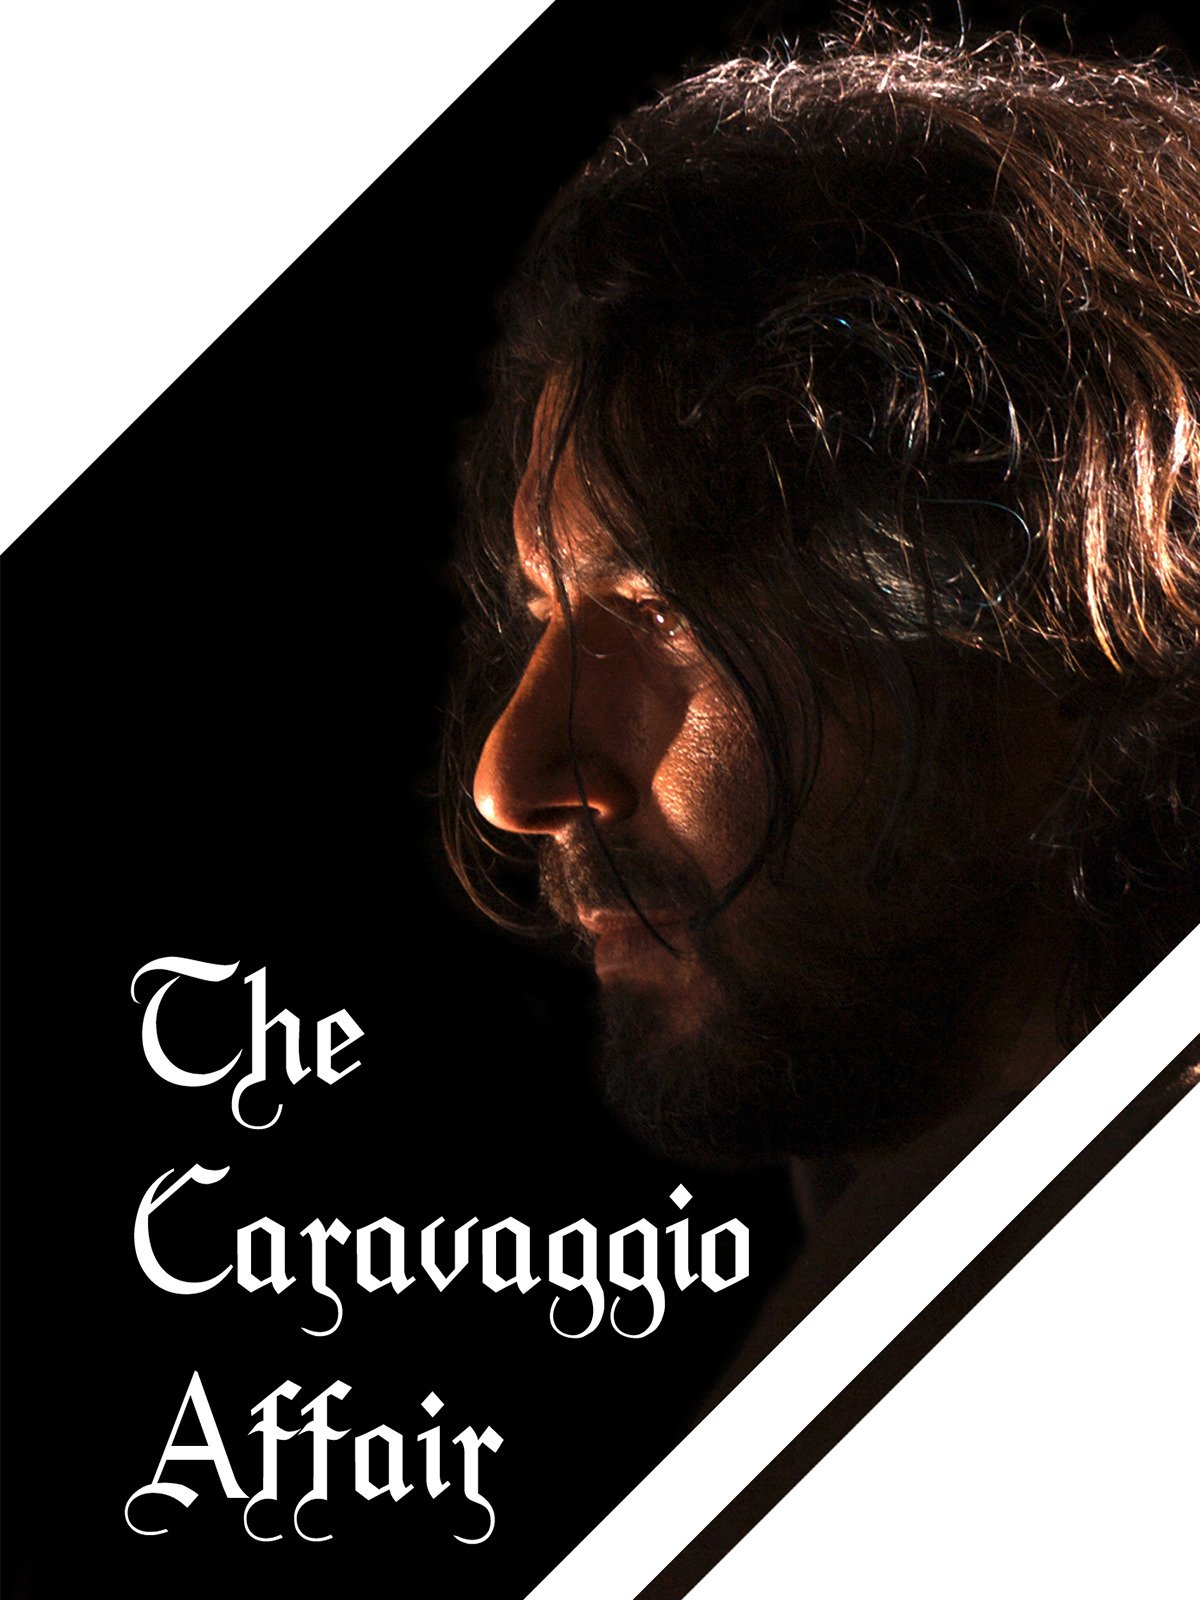 The Caravaggio Affair